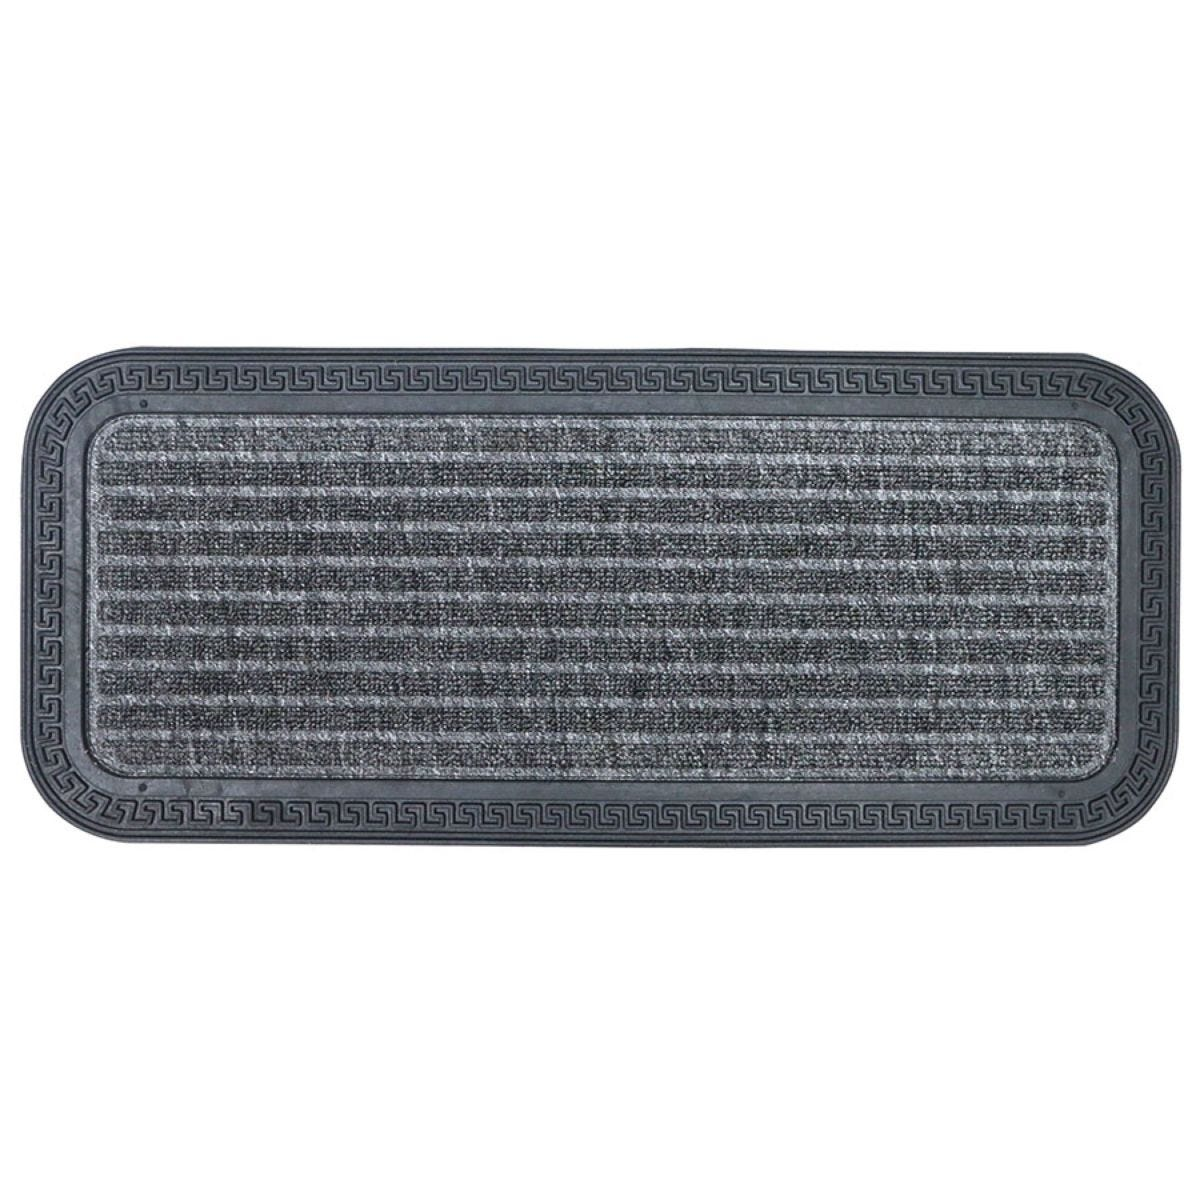 Home Essentials 25 x 60cm Rubber Boot Mat - Grey